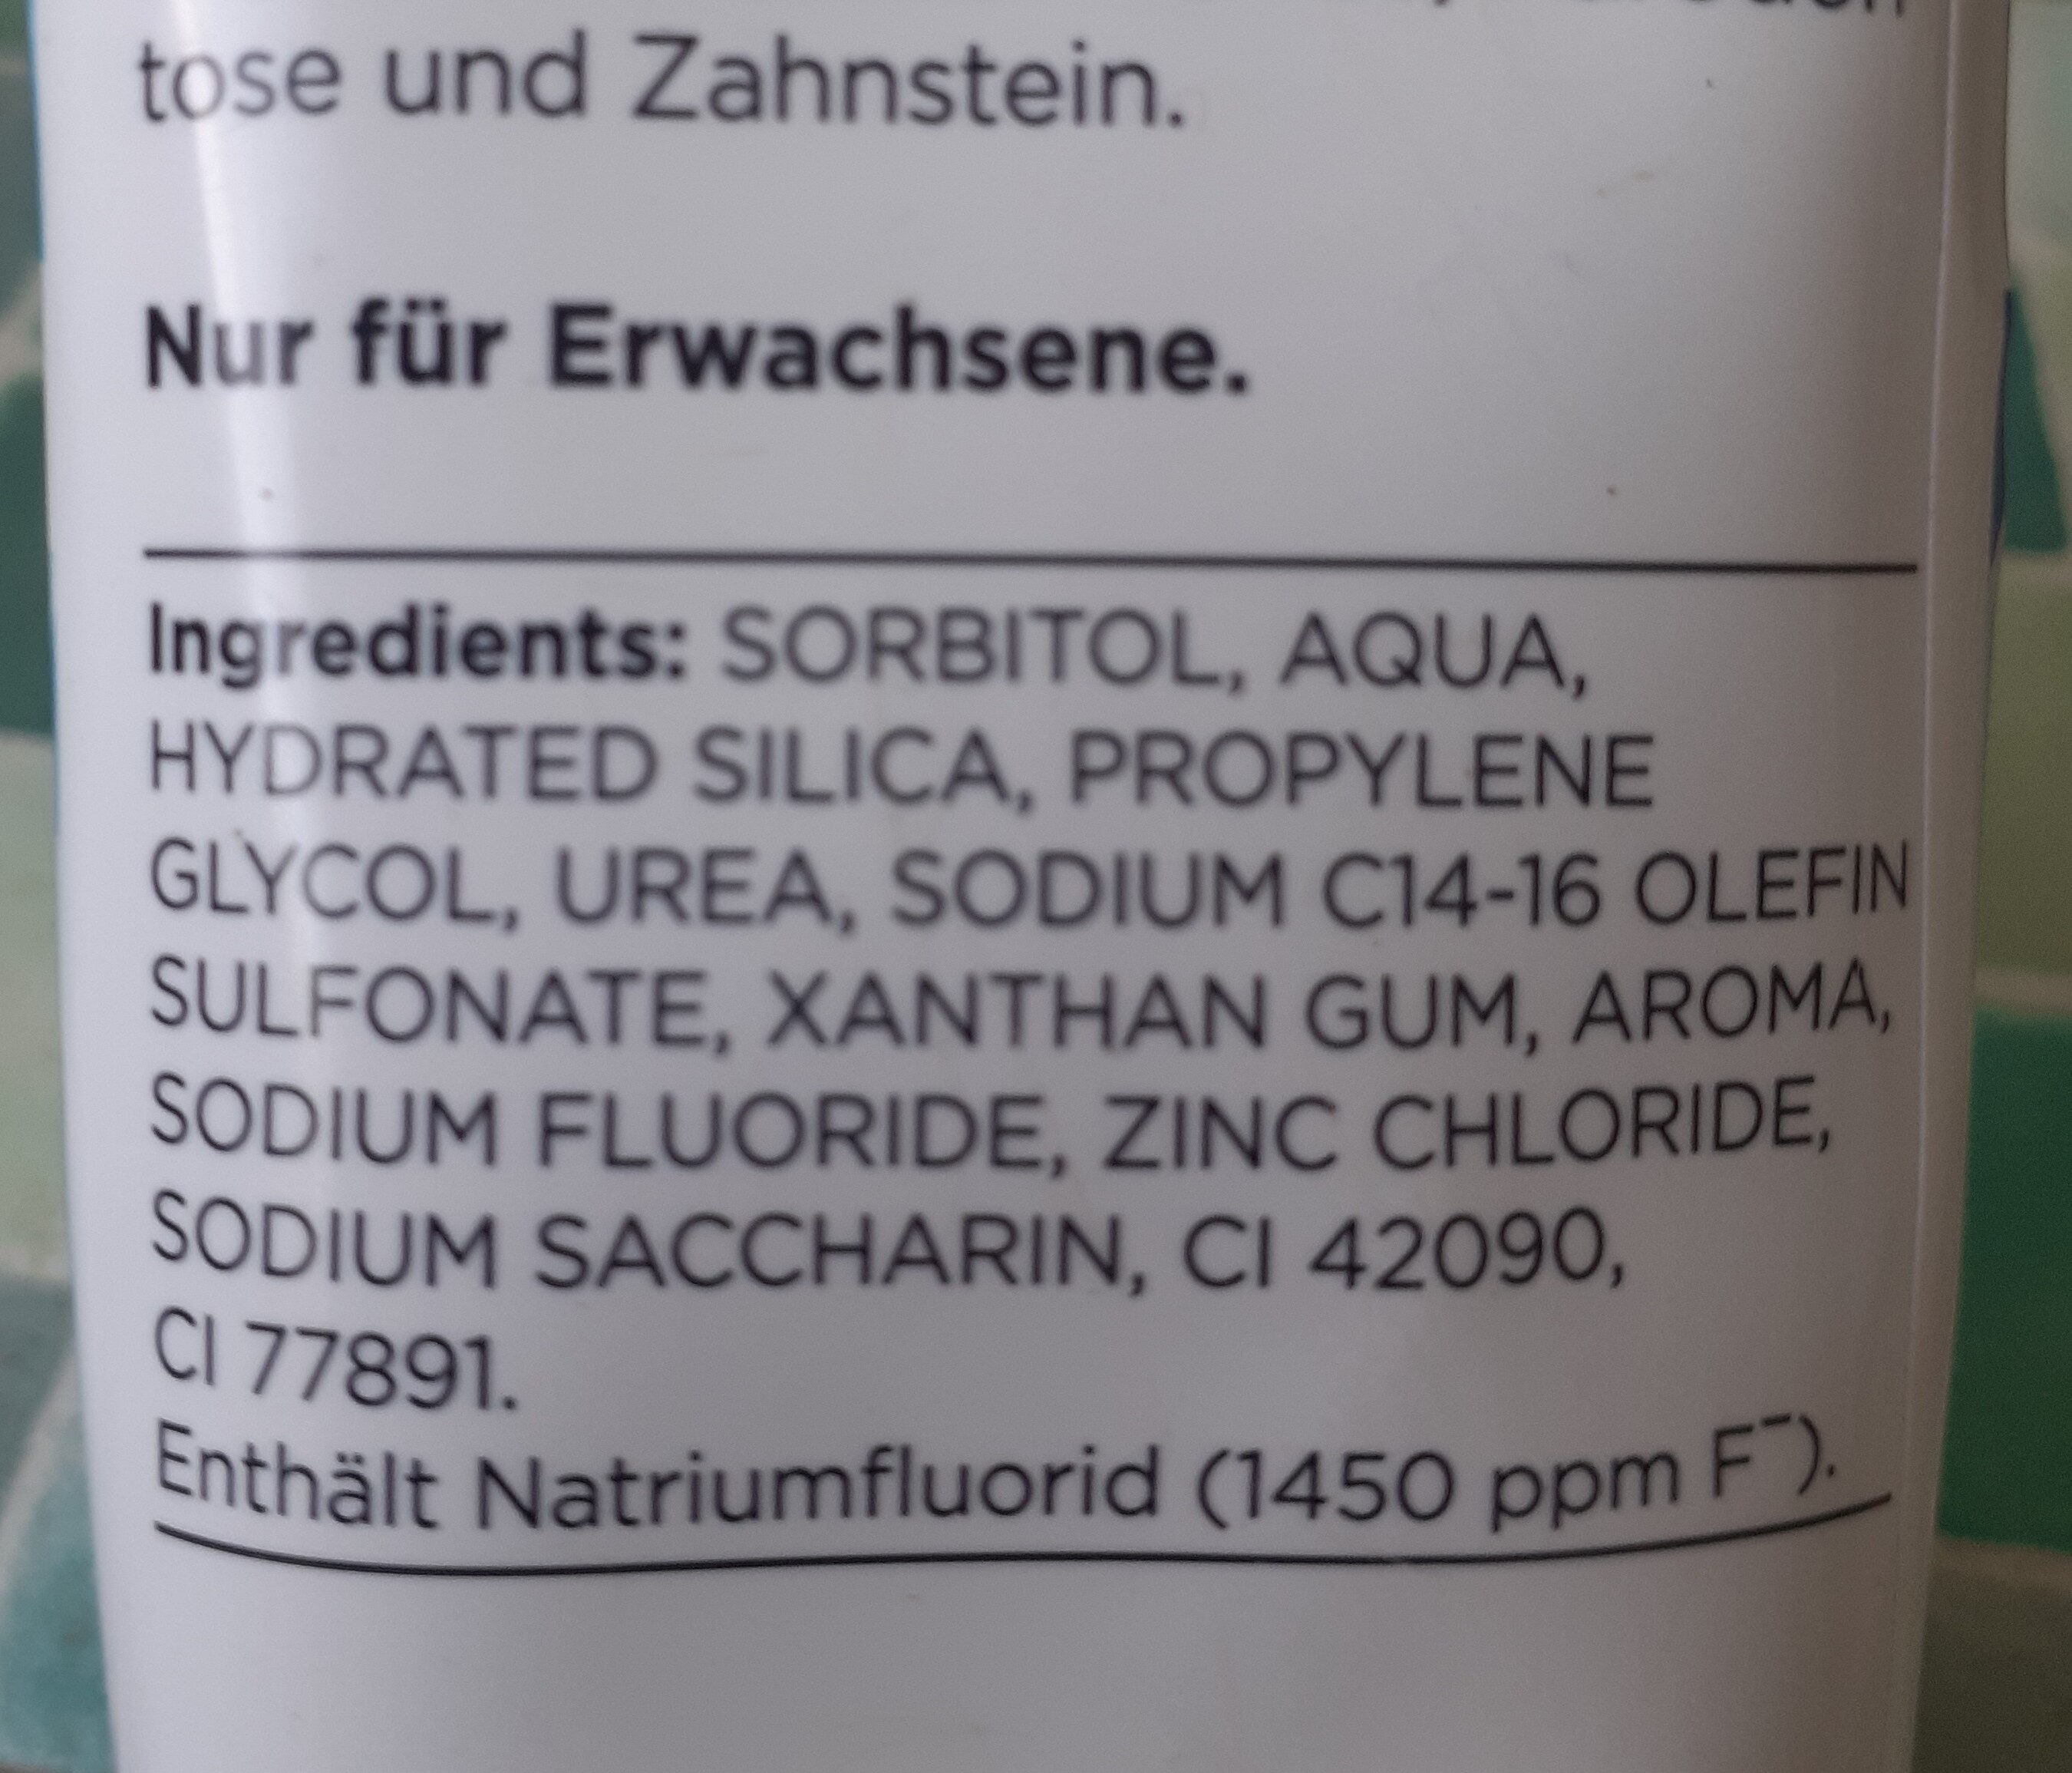 frische gel - Ingredients - de